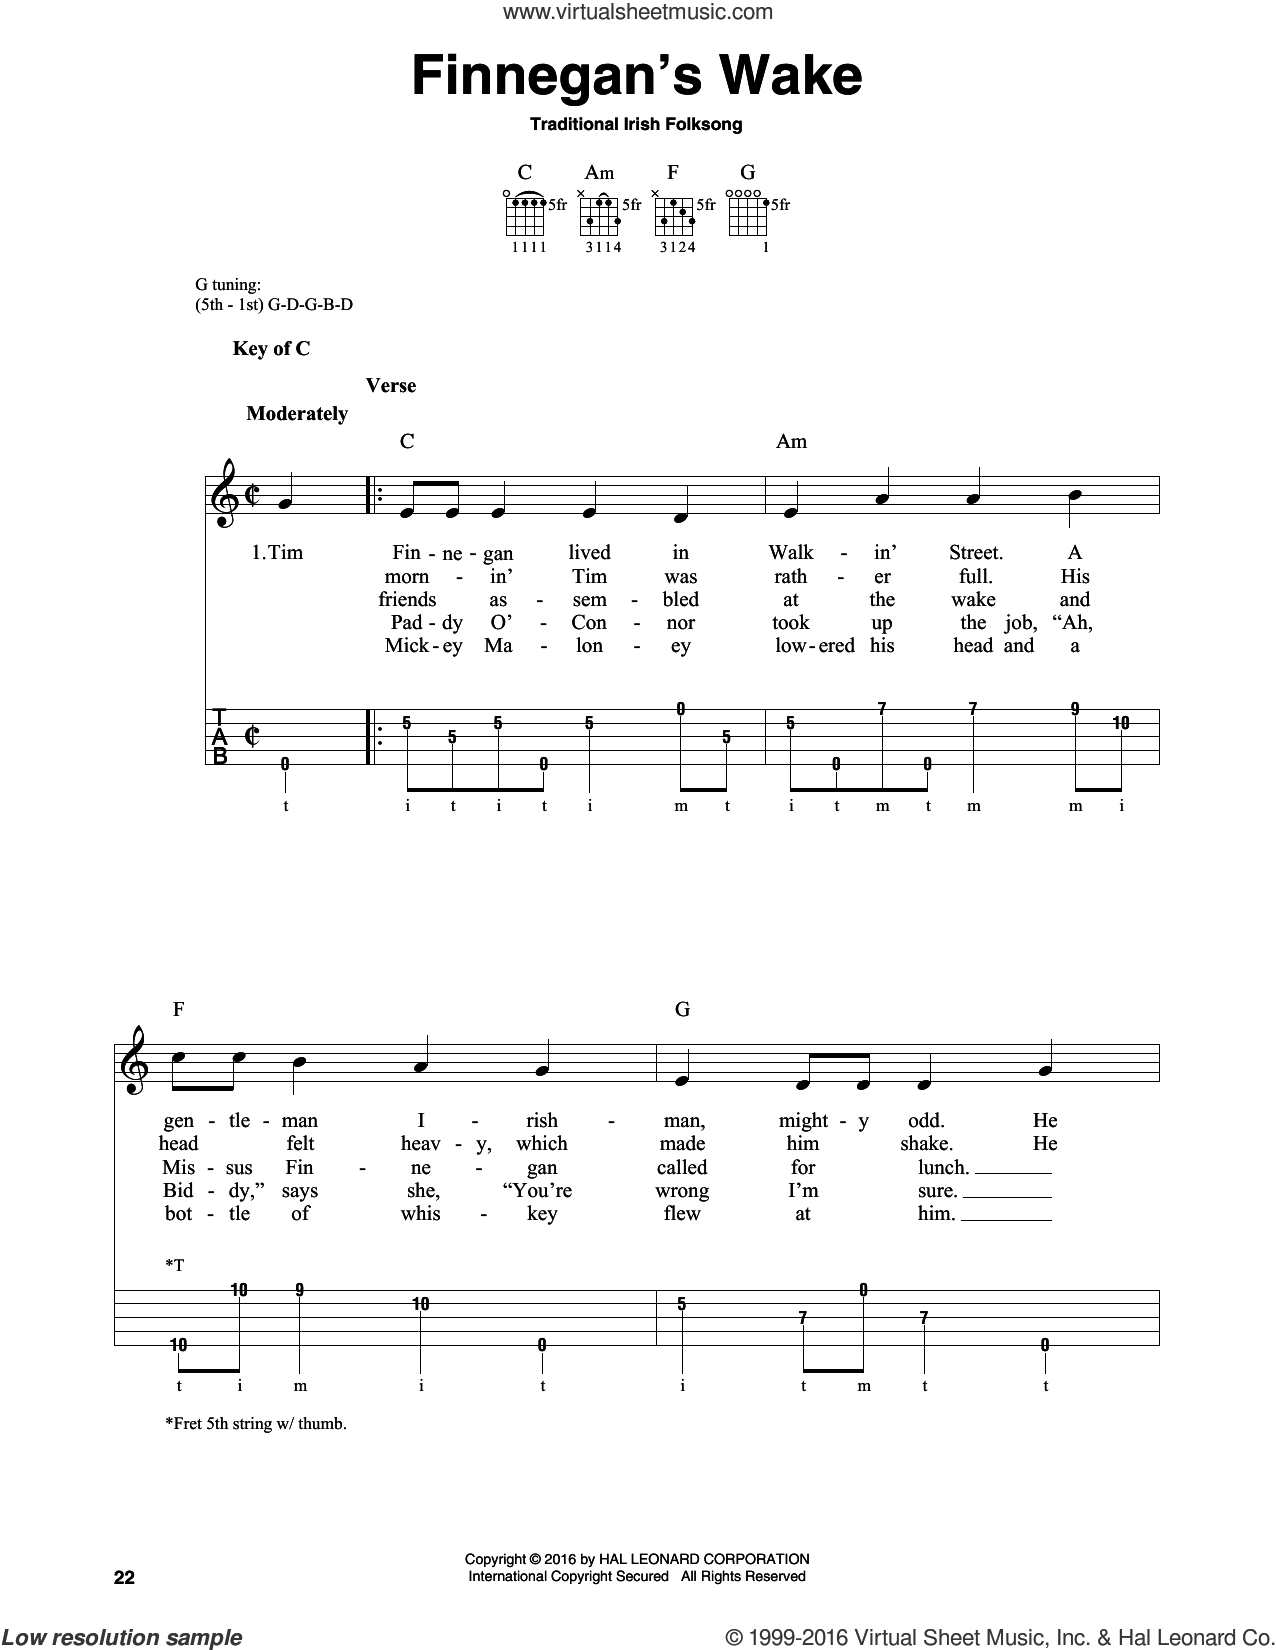 Finnegan's Wake sheet music for banjo solo, intermediate skill level